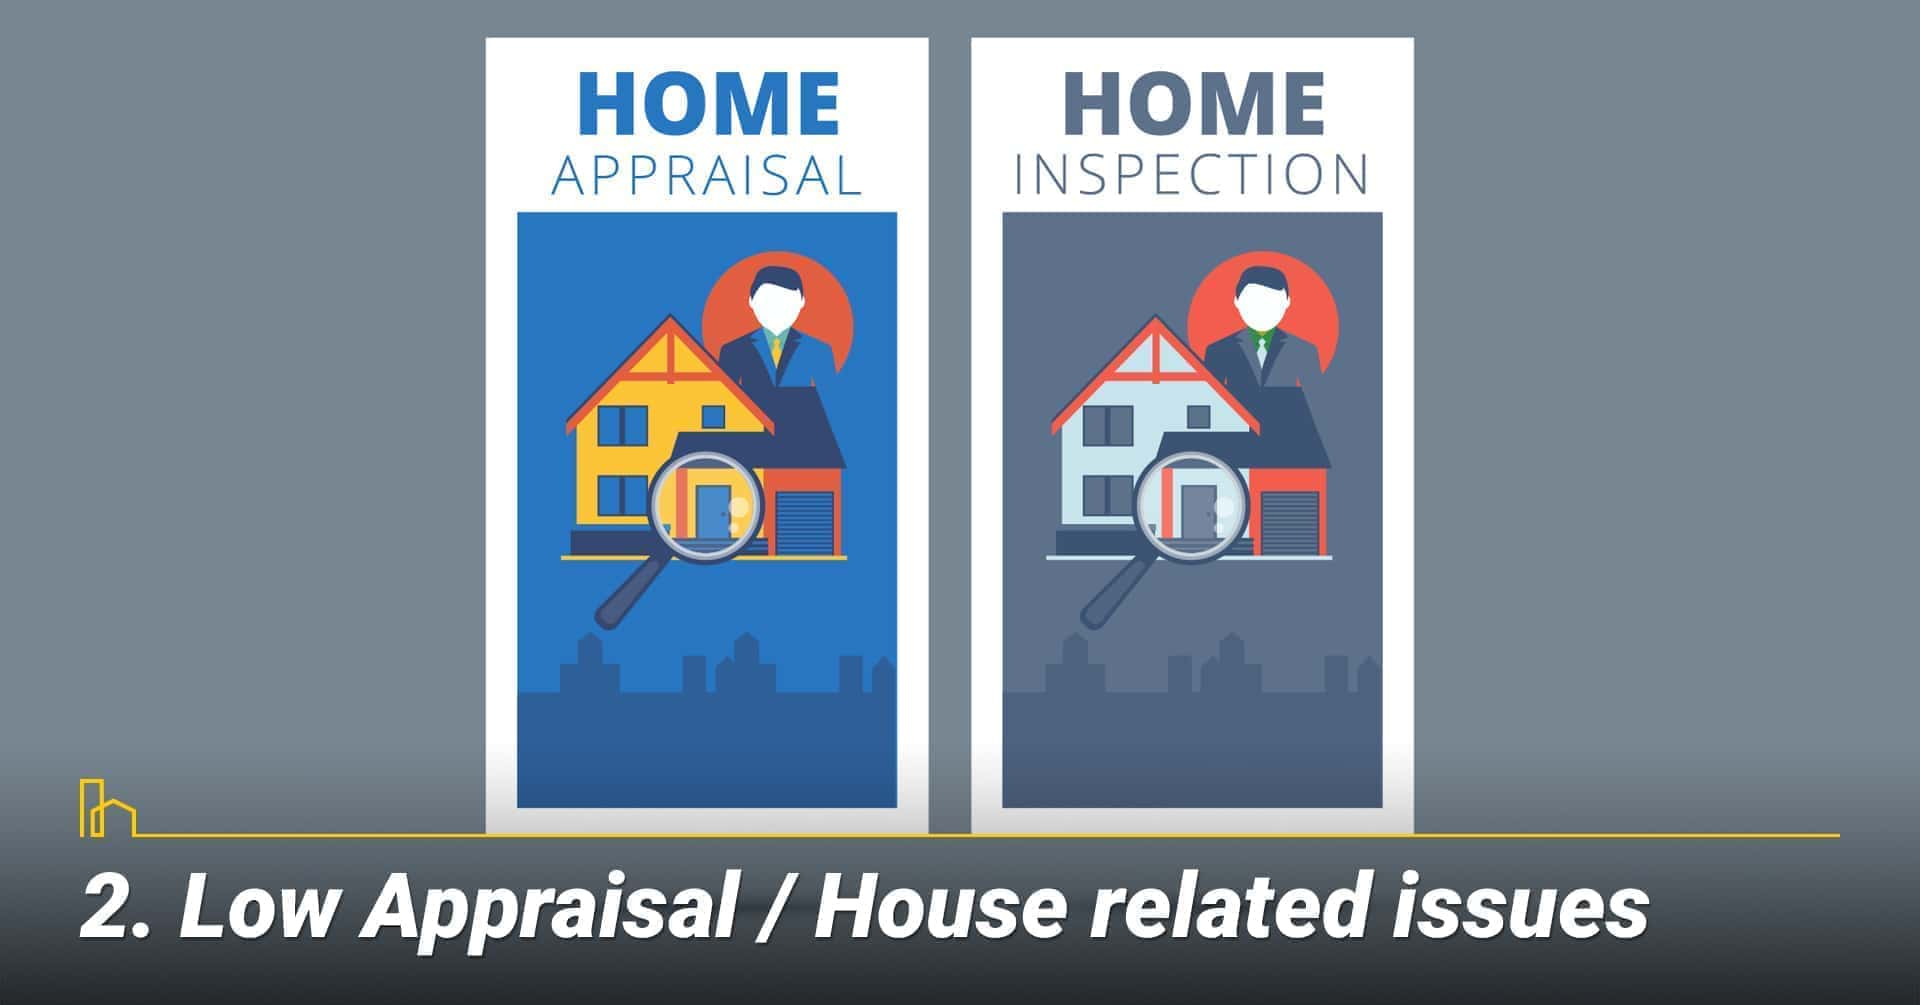 Low Appraisal / House related issues, inaccurate appraisal report